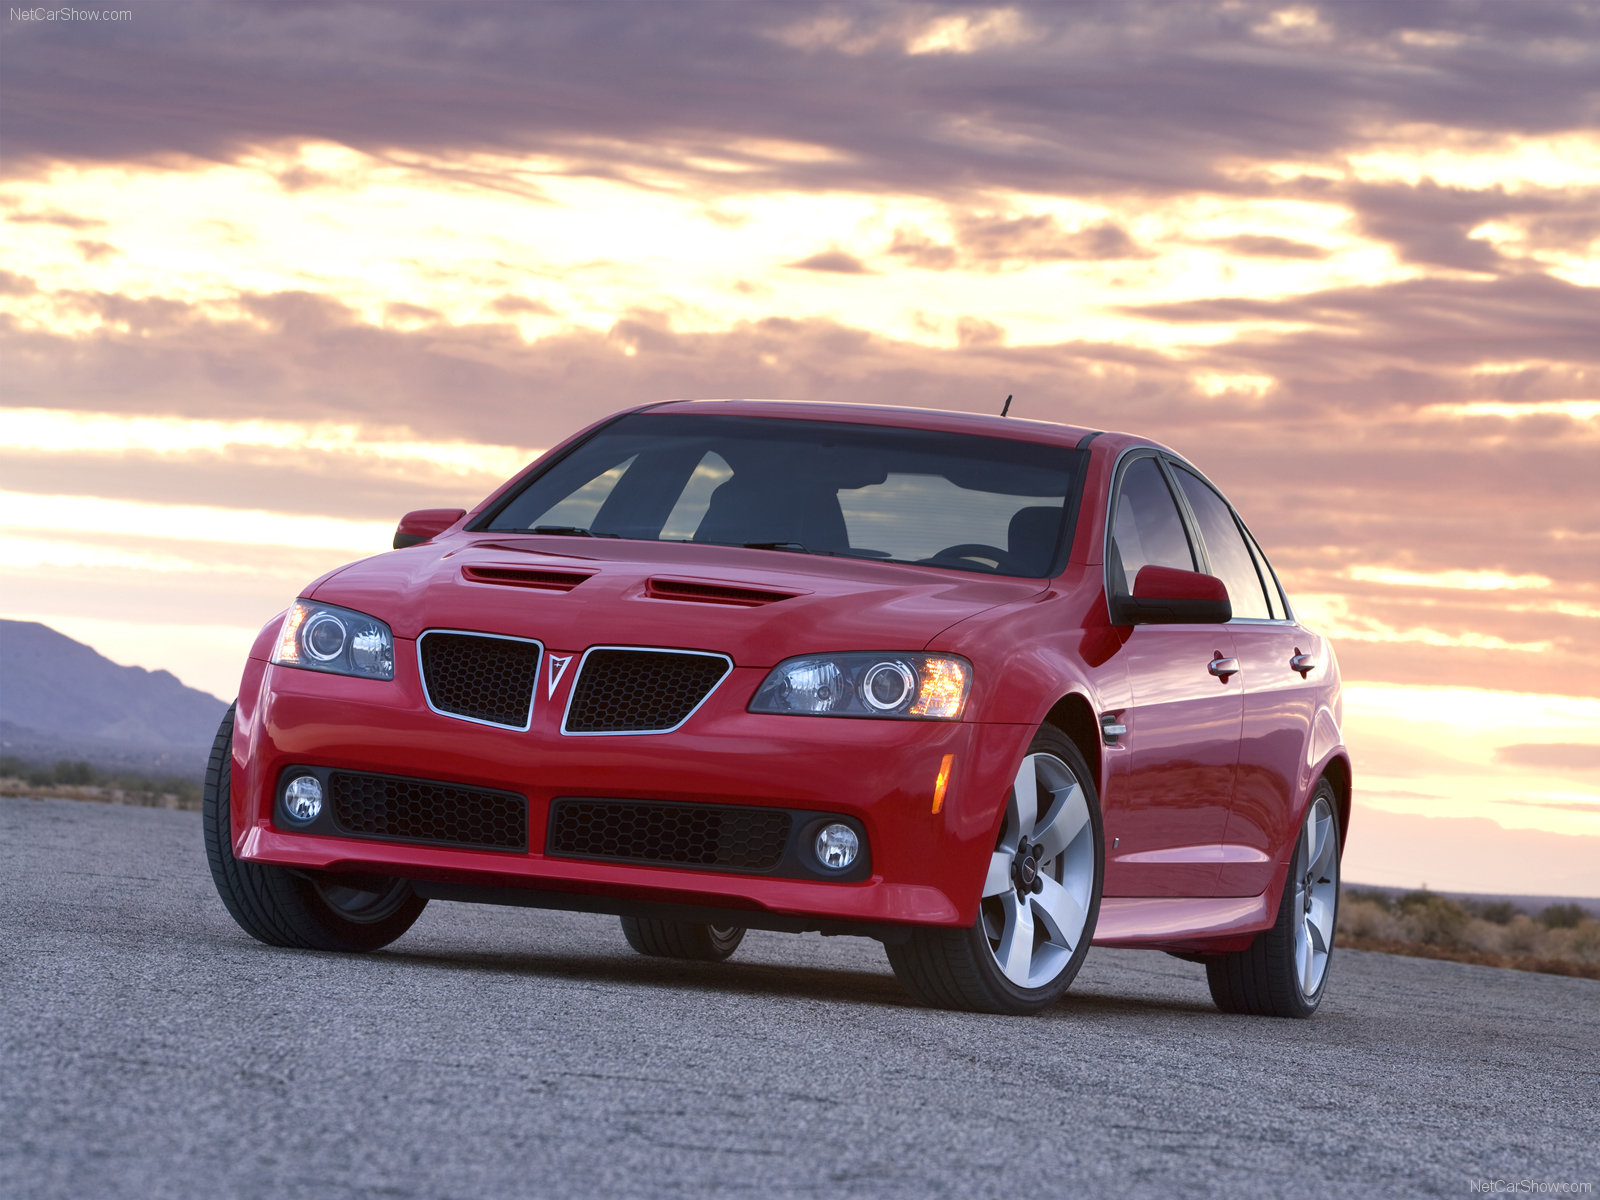 Pontiac G8_GT_mp41_pic_52921 pontiac g8 gt photos photogallery with 22 pics carsbase com g8 gt fuse box at crackthecode.co